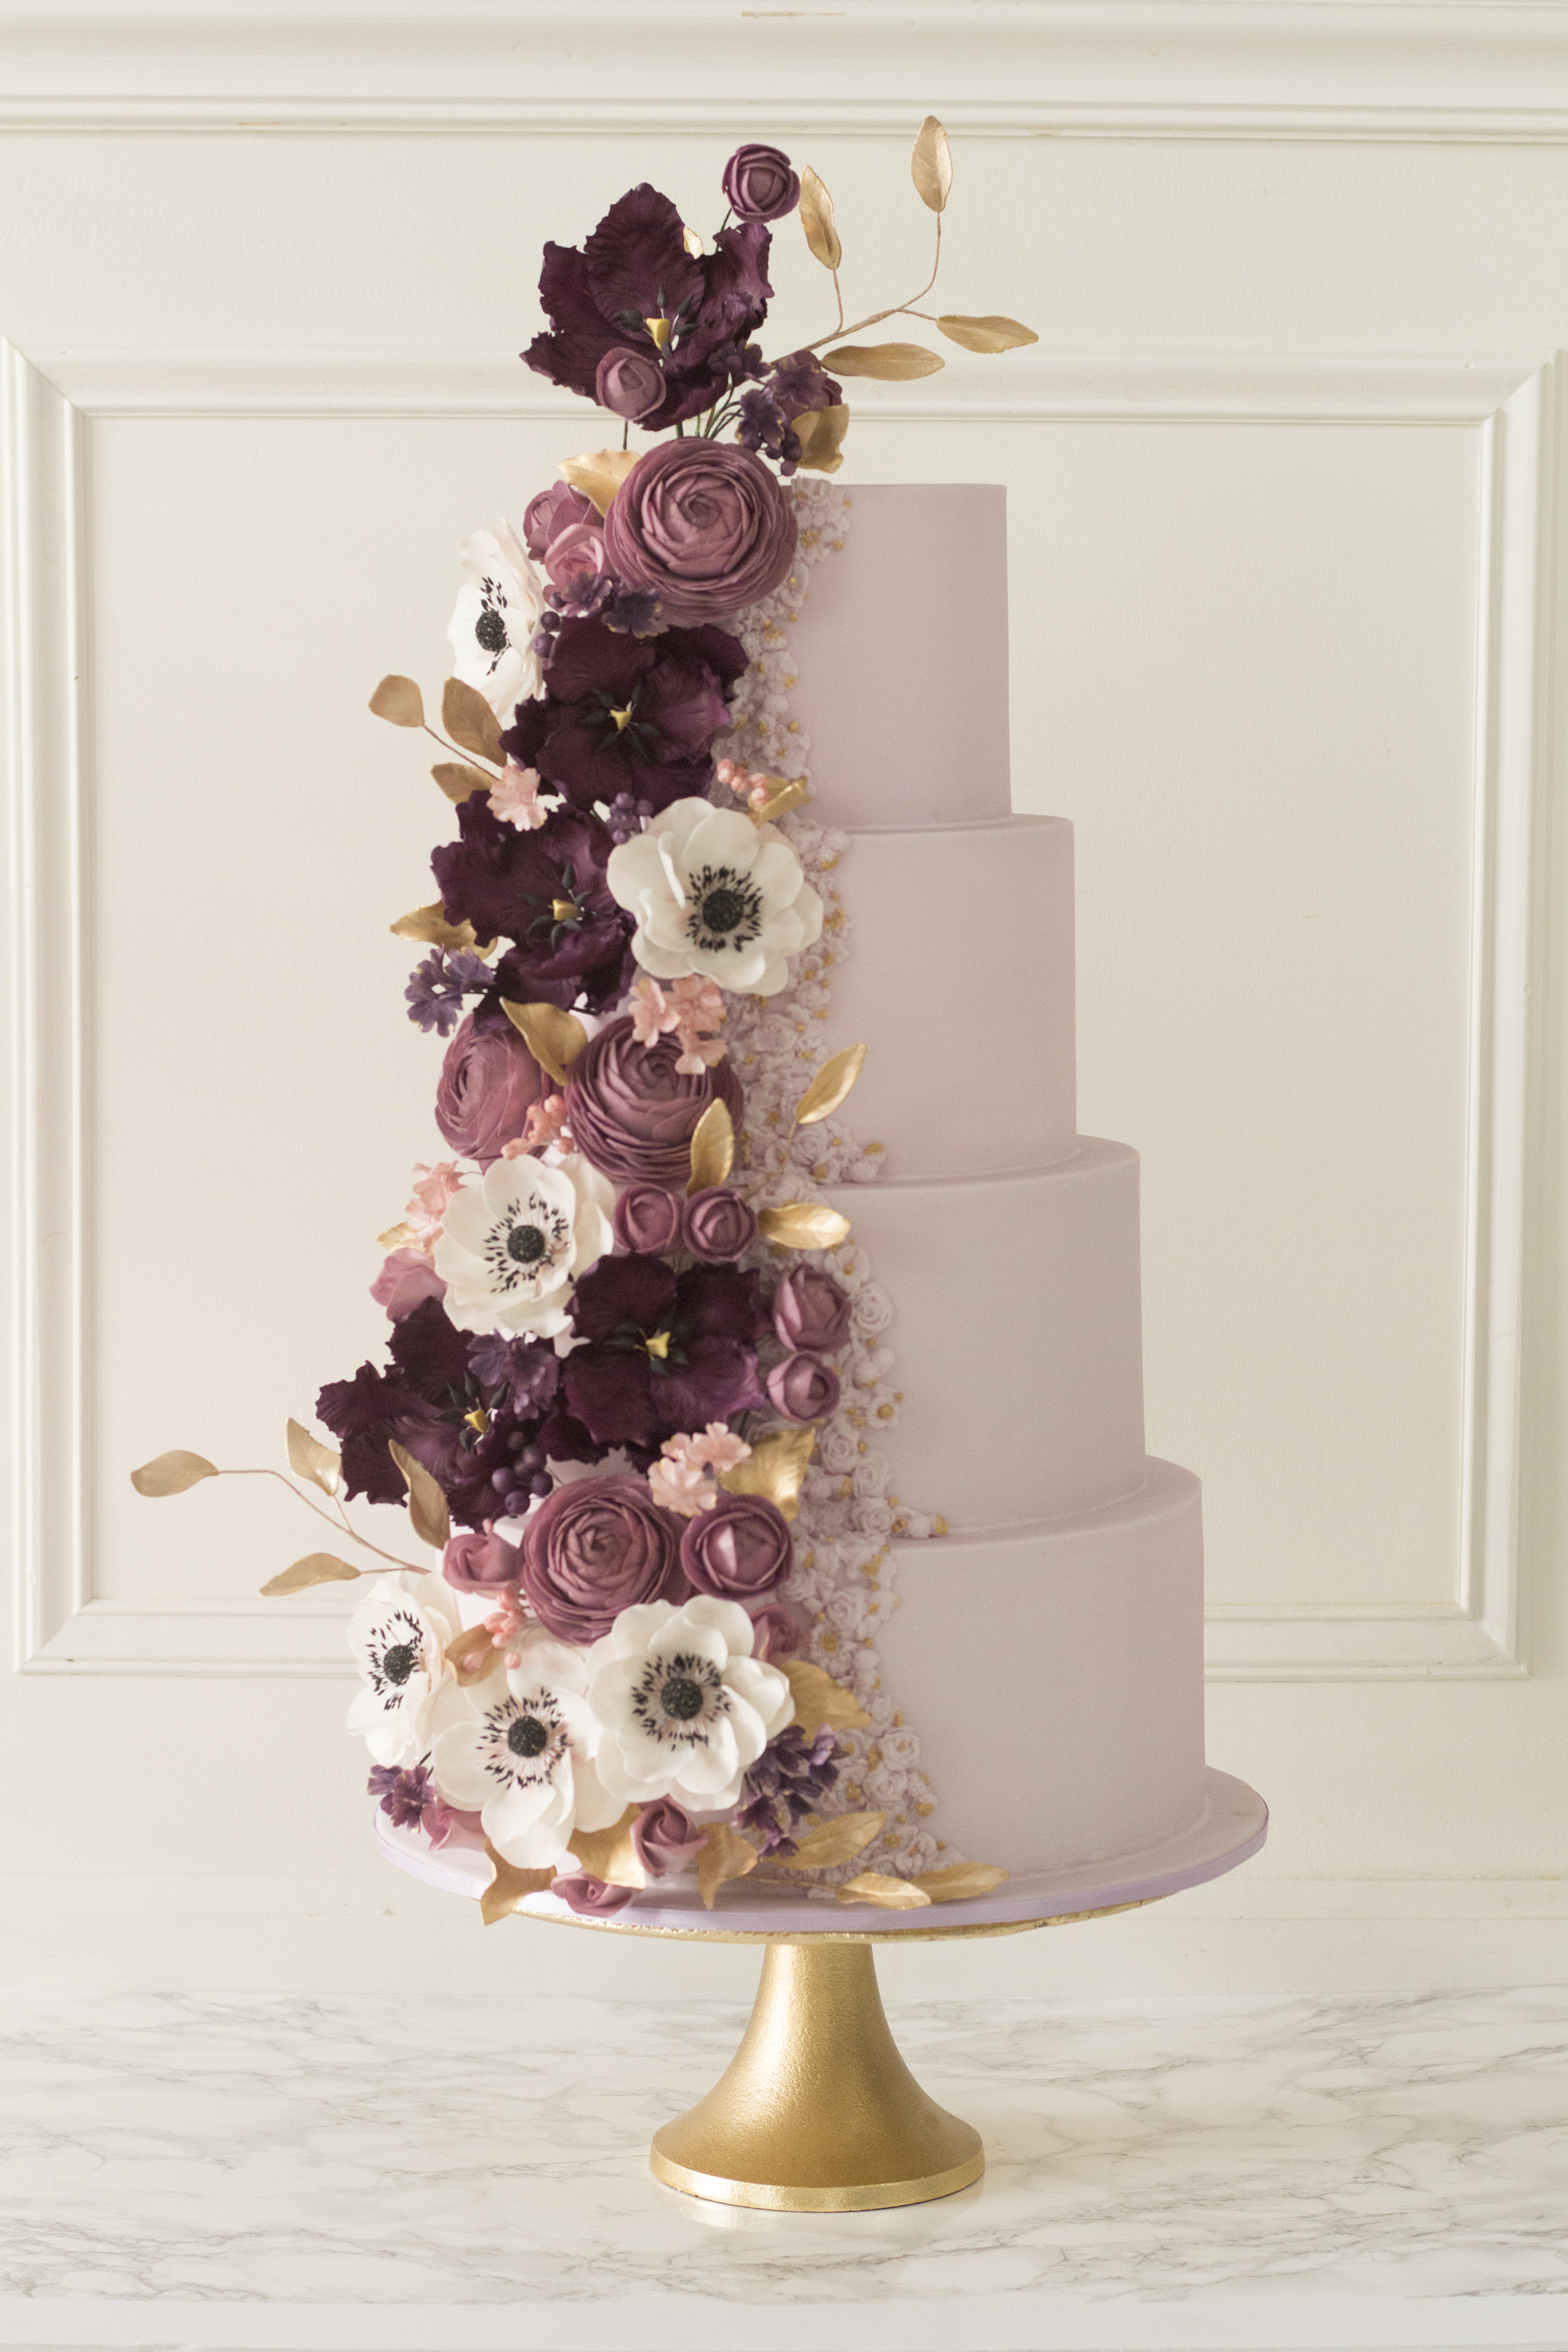 Baby Pink fondant wedding cake with cascading shade of pink sugar flowers